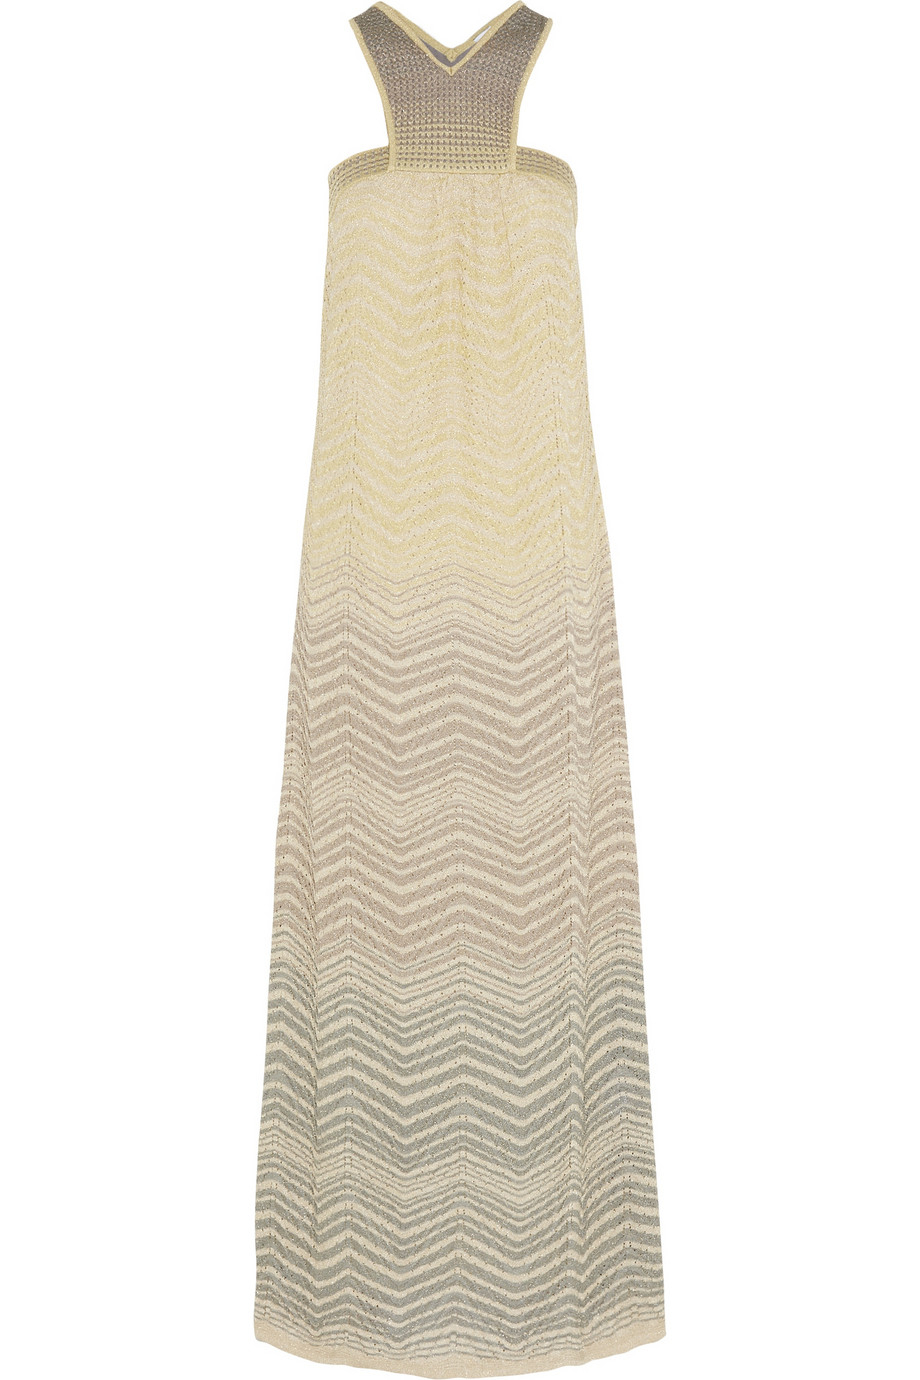 M missoni Crochet-Knit Maxi Dress in Yellow  Lyst